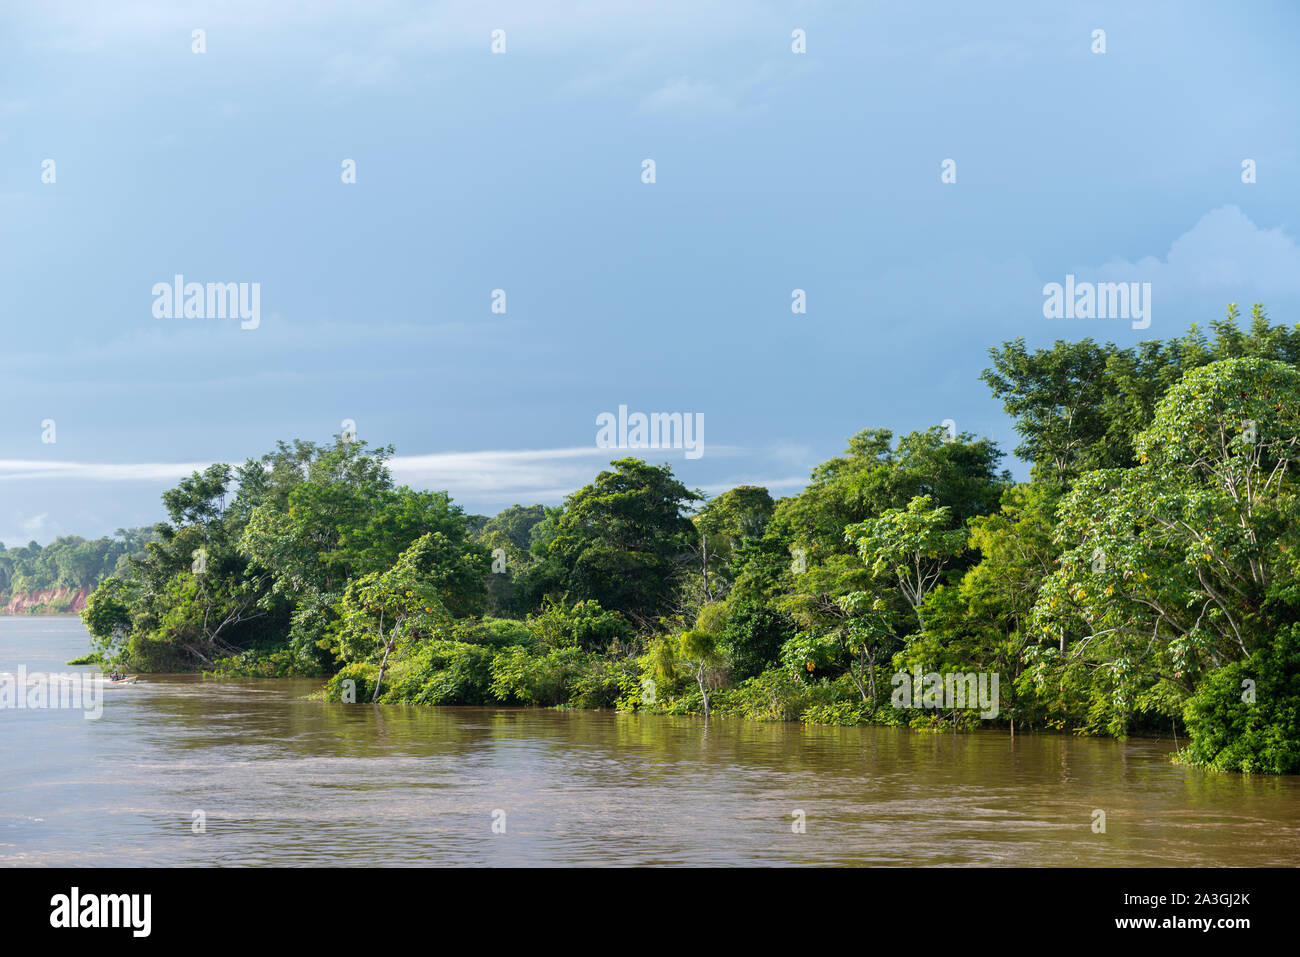 A  two-day-riverboat trip from Manaus to Tefé on the Amazonas River or Rio Solimoes, end of rainy season, The Amazon, Brazil, Latin America Stock Photo